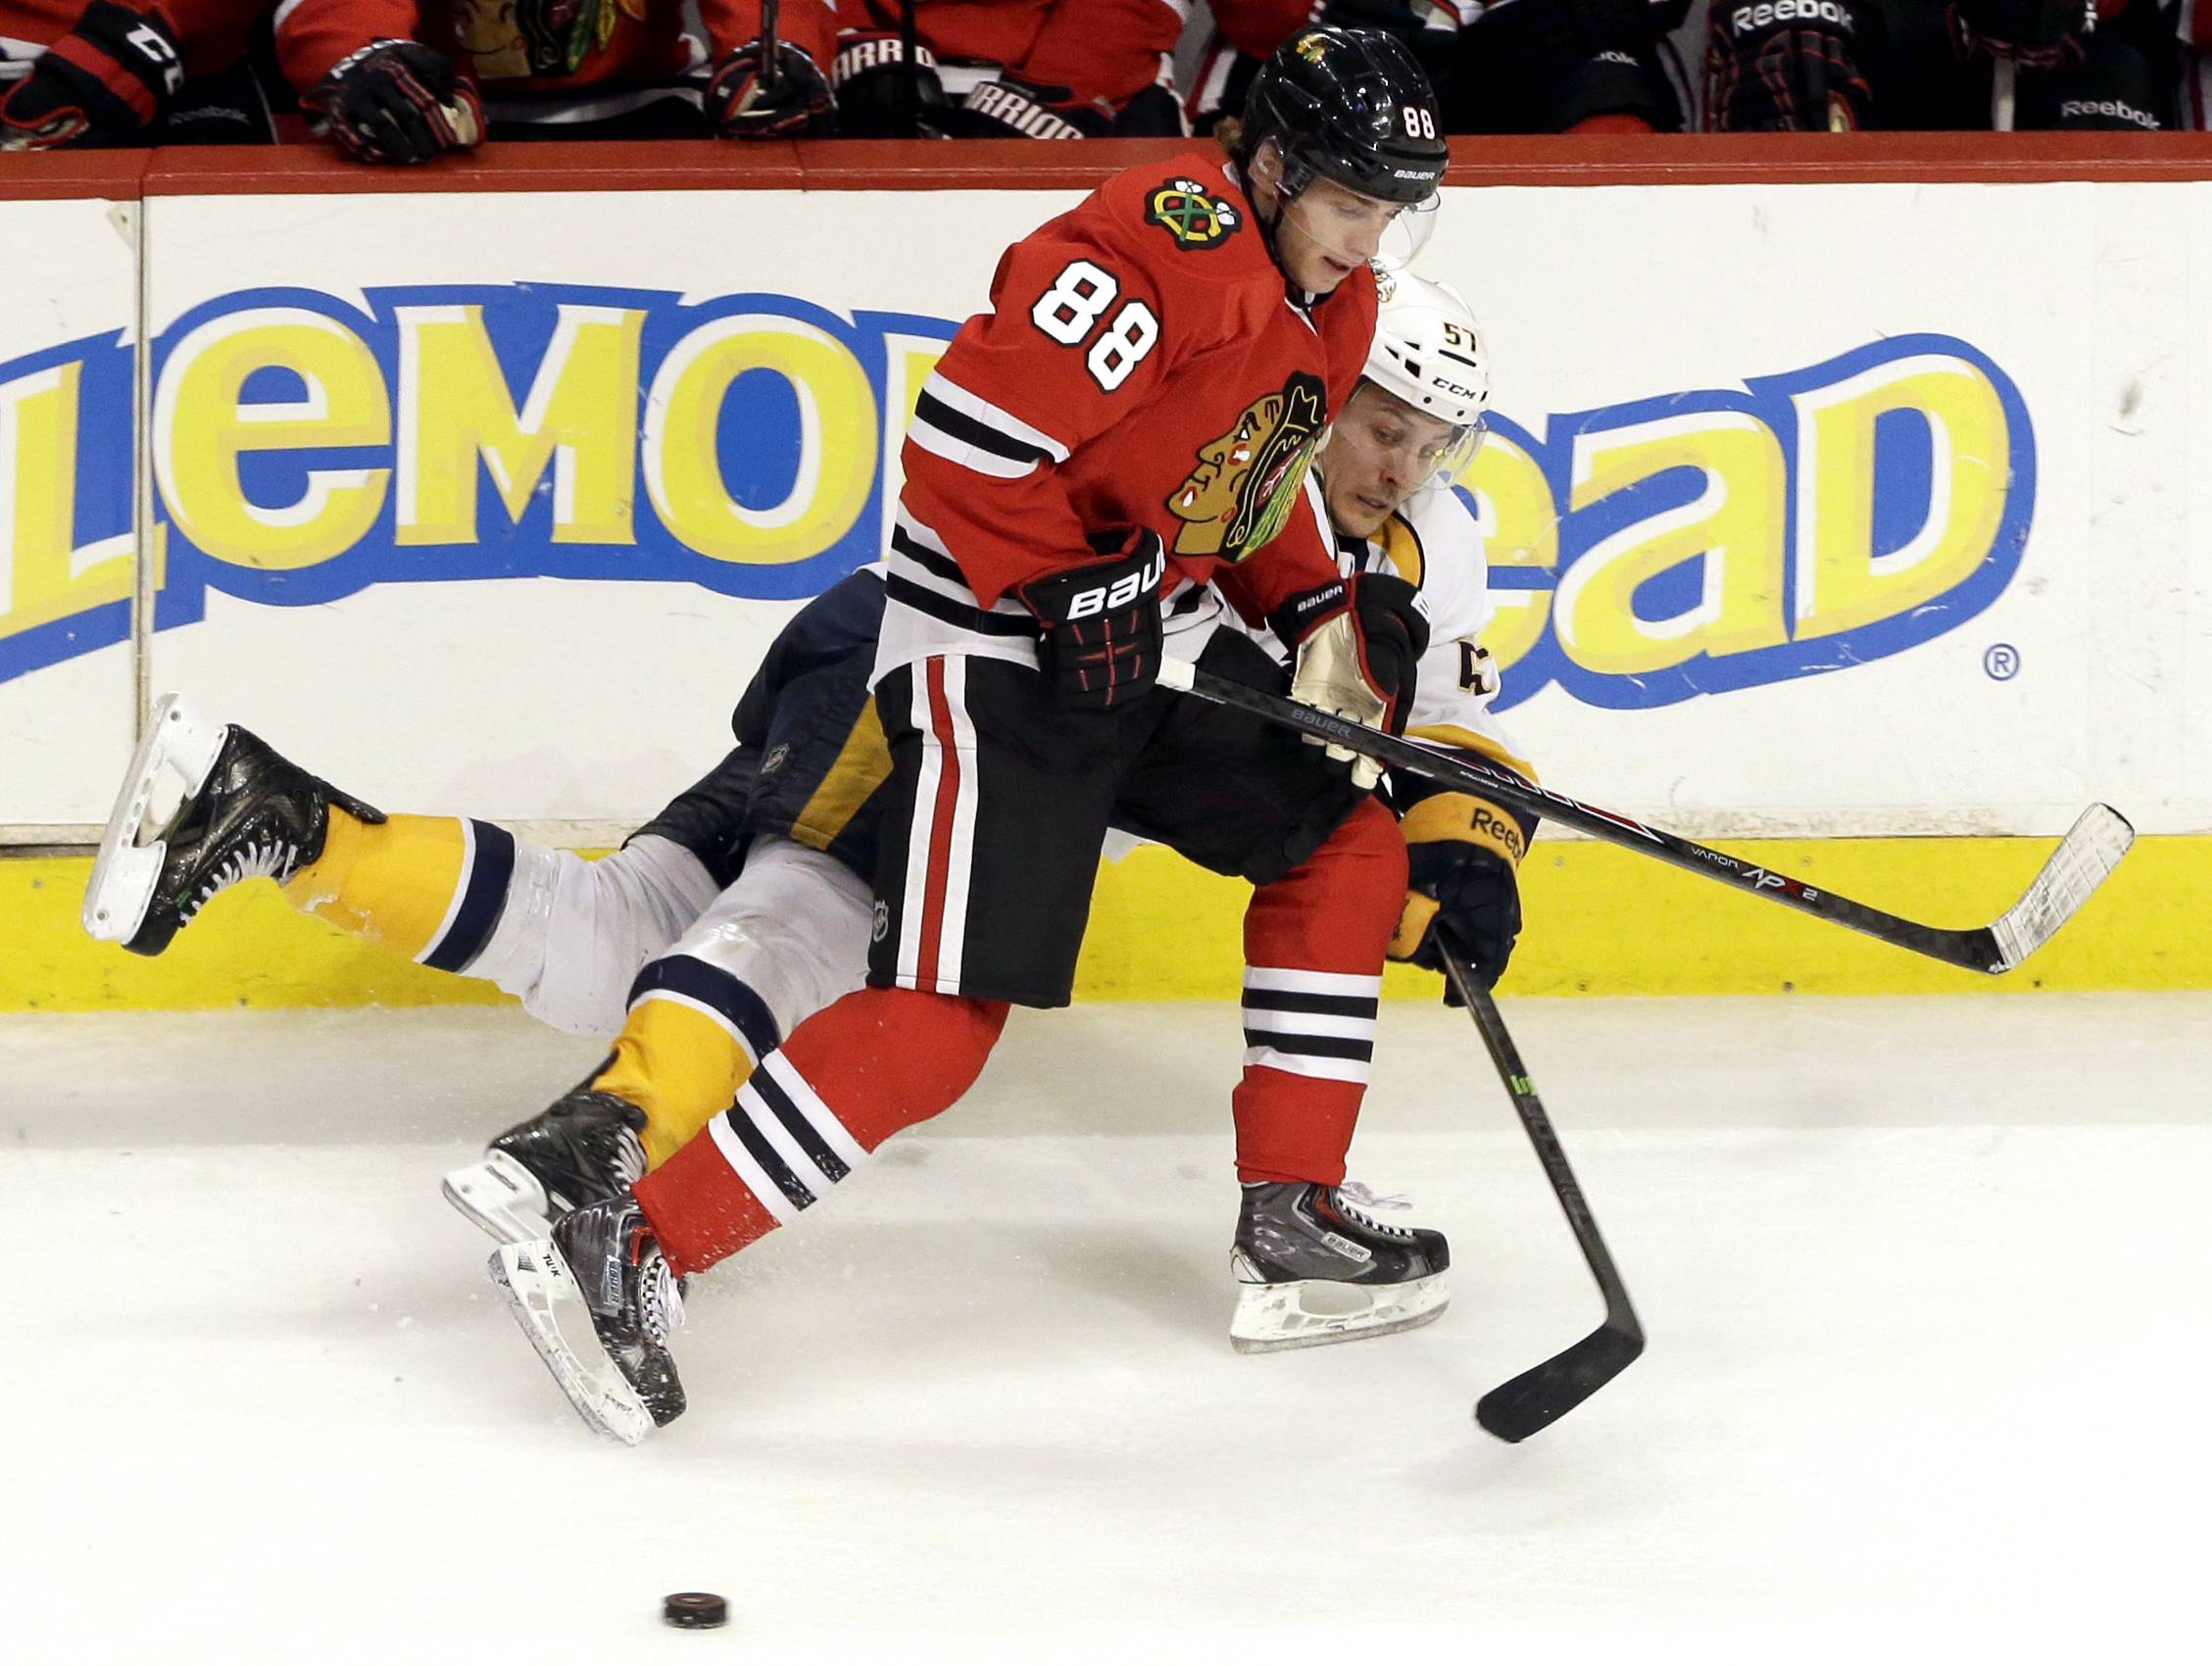 The Blackhawks' Patrick Kane and the Predators' Gabriel Bourque battle for the puck March 14 during a game at the United Center.